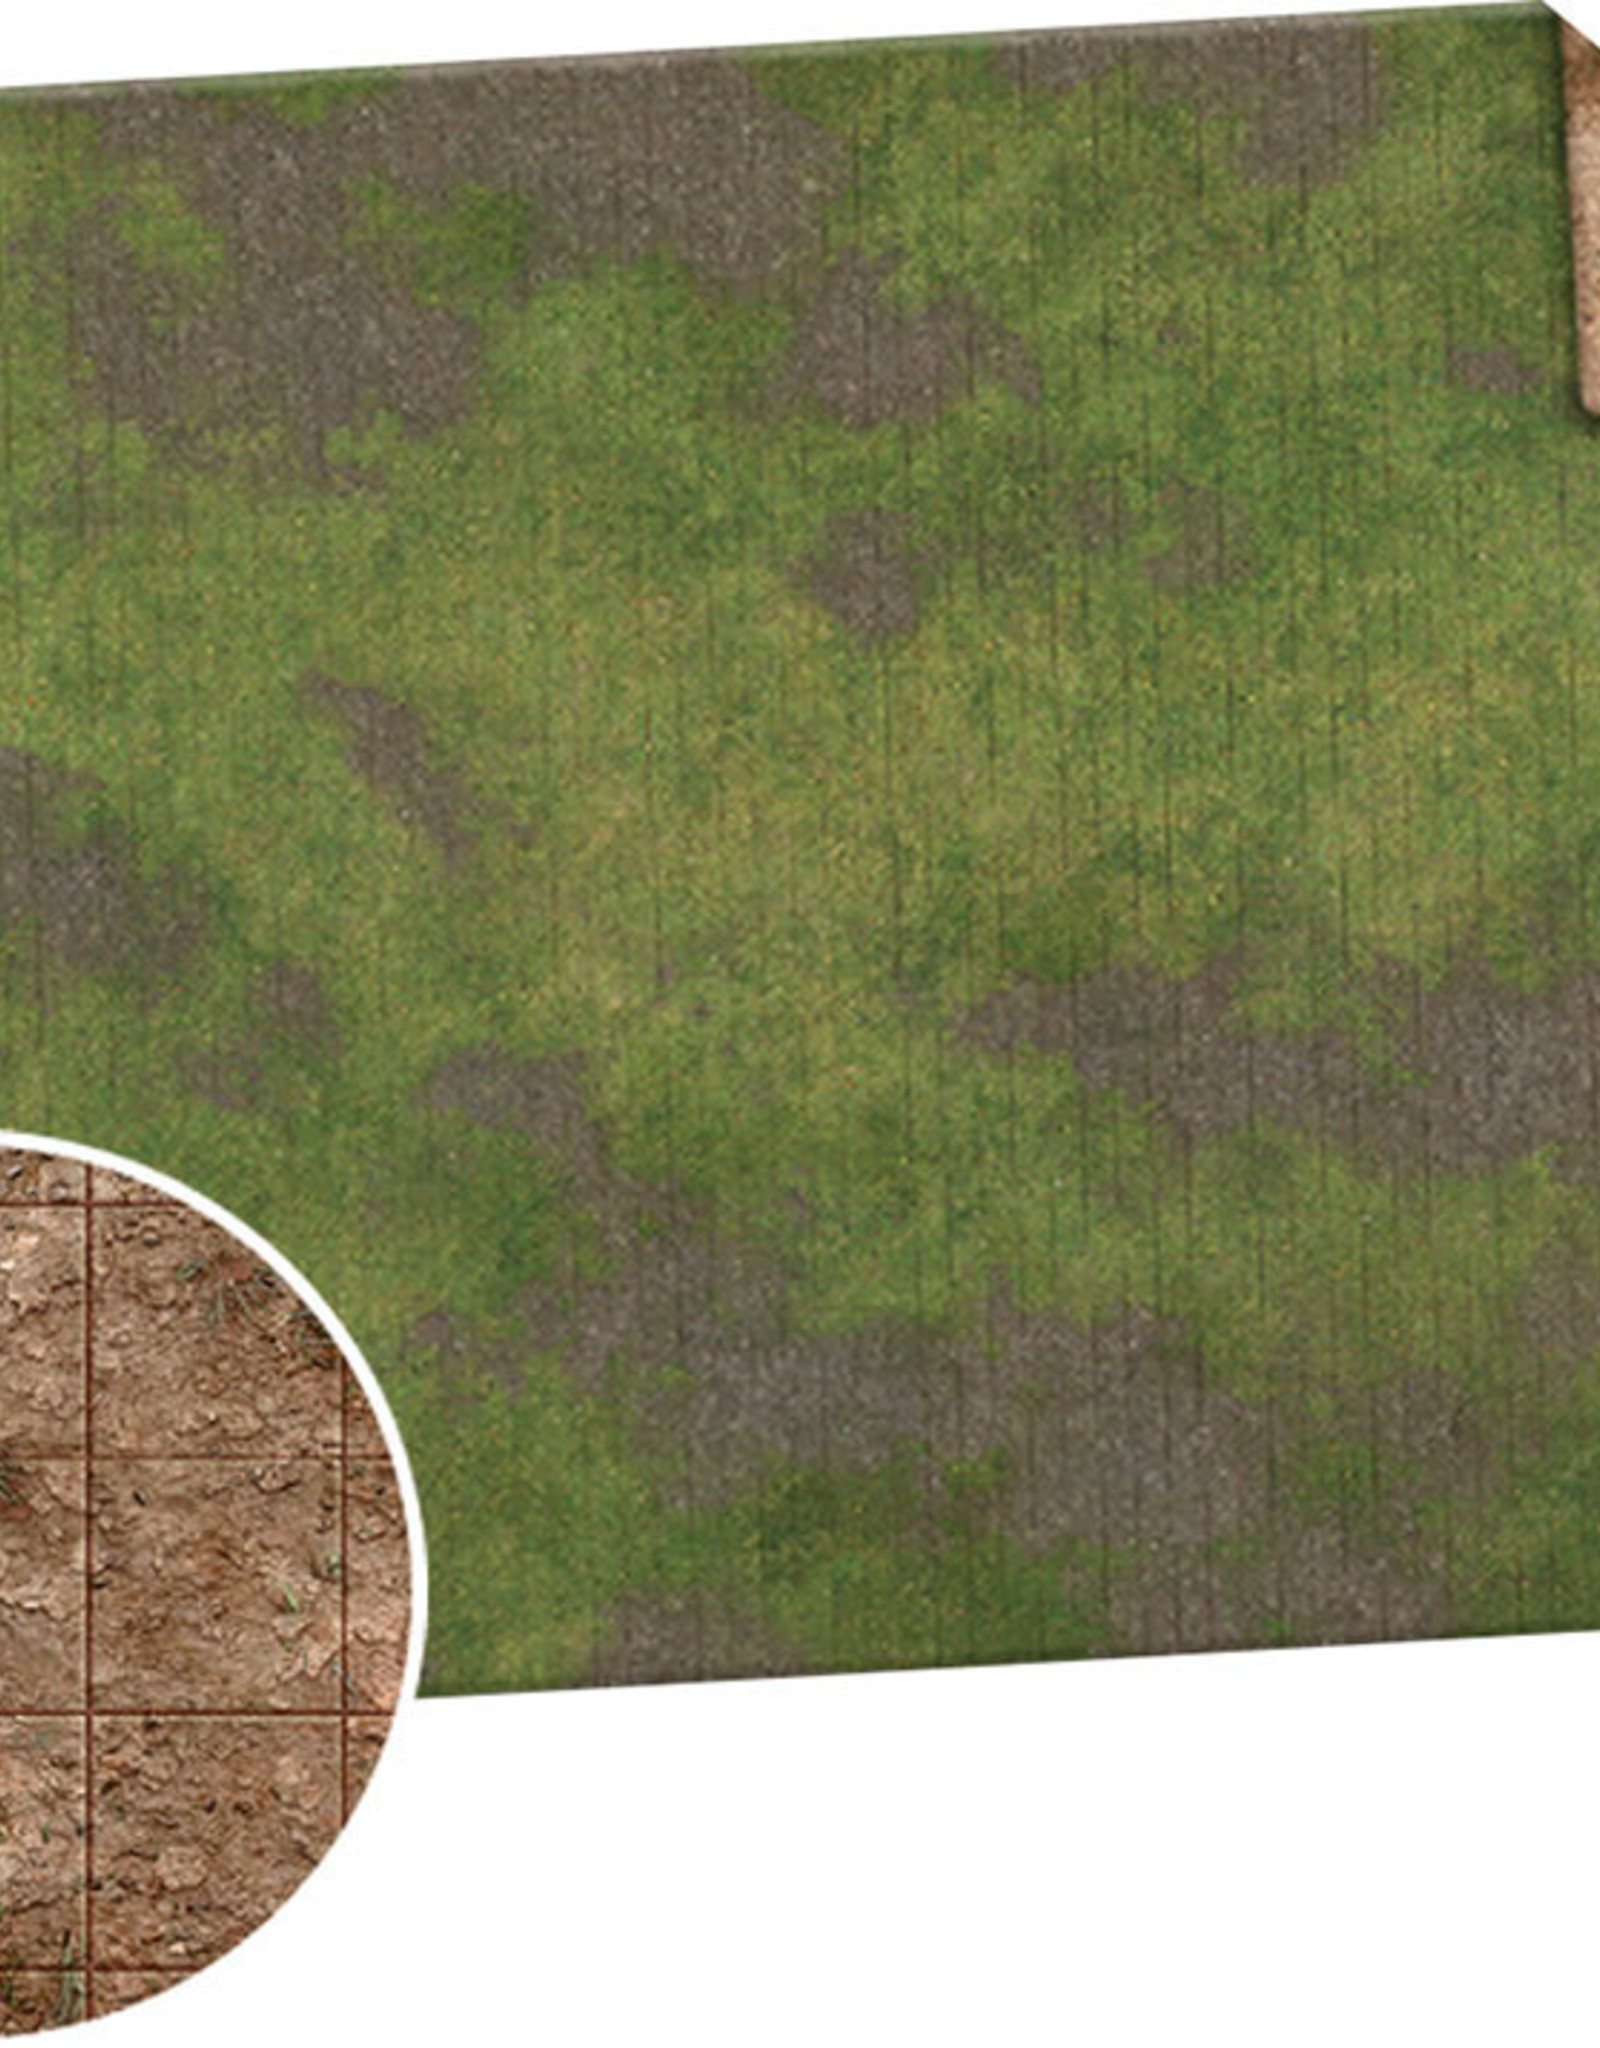 Monster Fight Club Monster Game Mat: 6x4 - Broken Grassland / Desert Scrubland